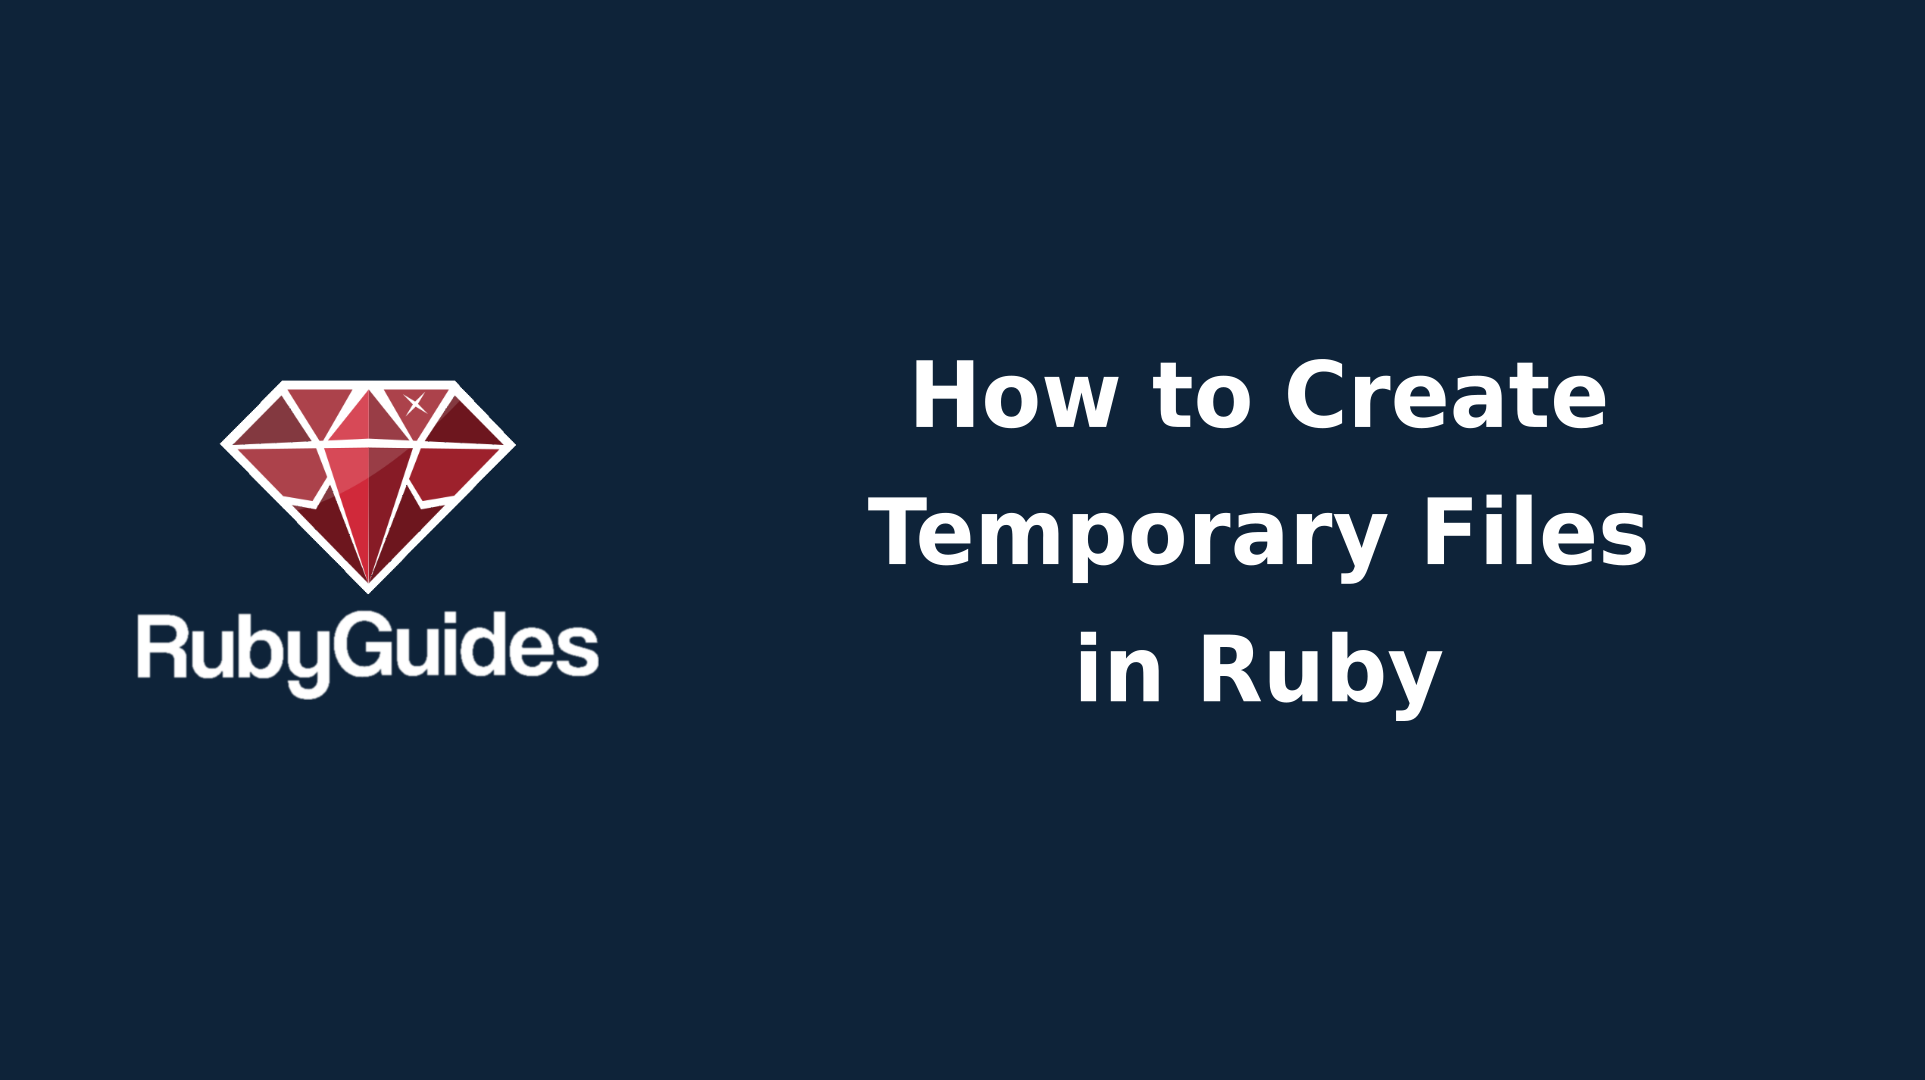 How to Create Temporary Files in Ruby - RubyGuides